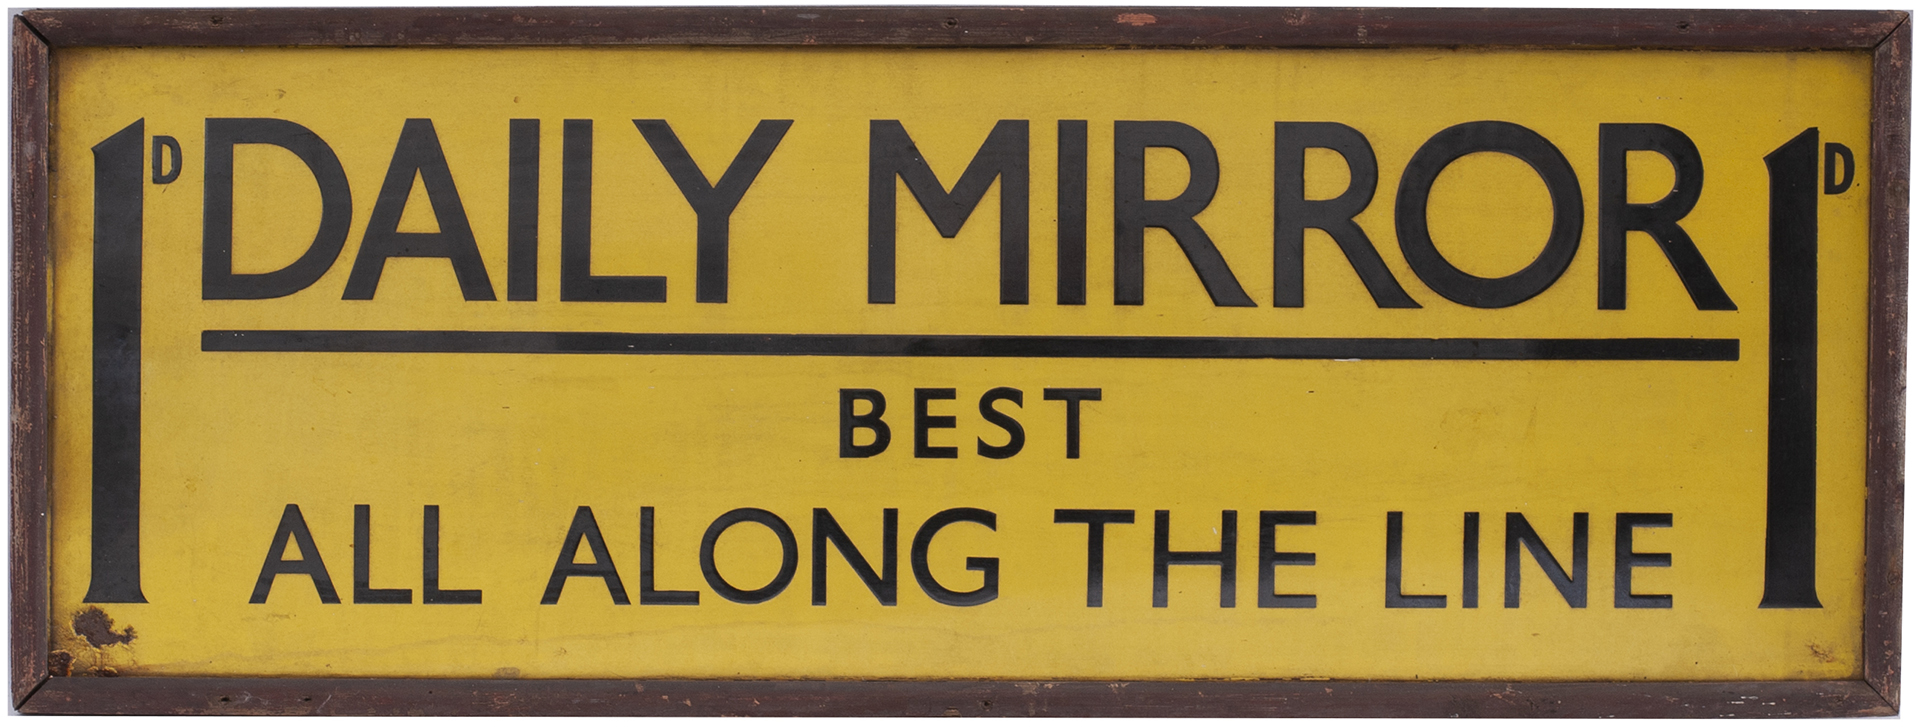 Advertising enamel sign 1D DAILY MIRROR BEST ALL ALONG THE LINE. In excellent condition with one